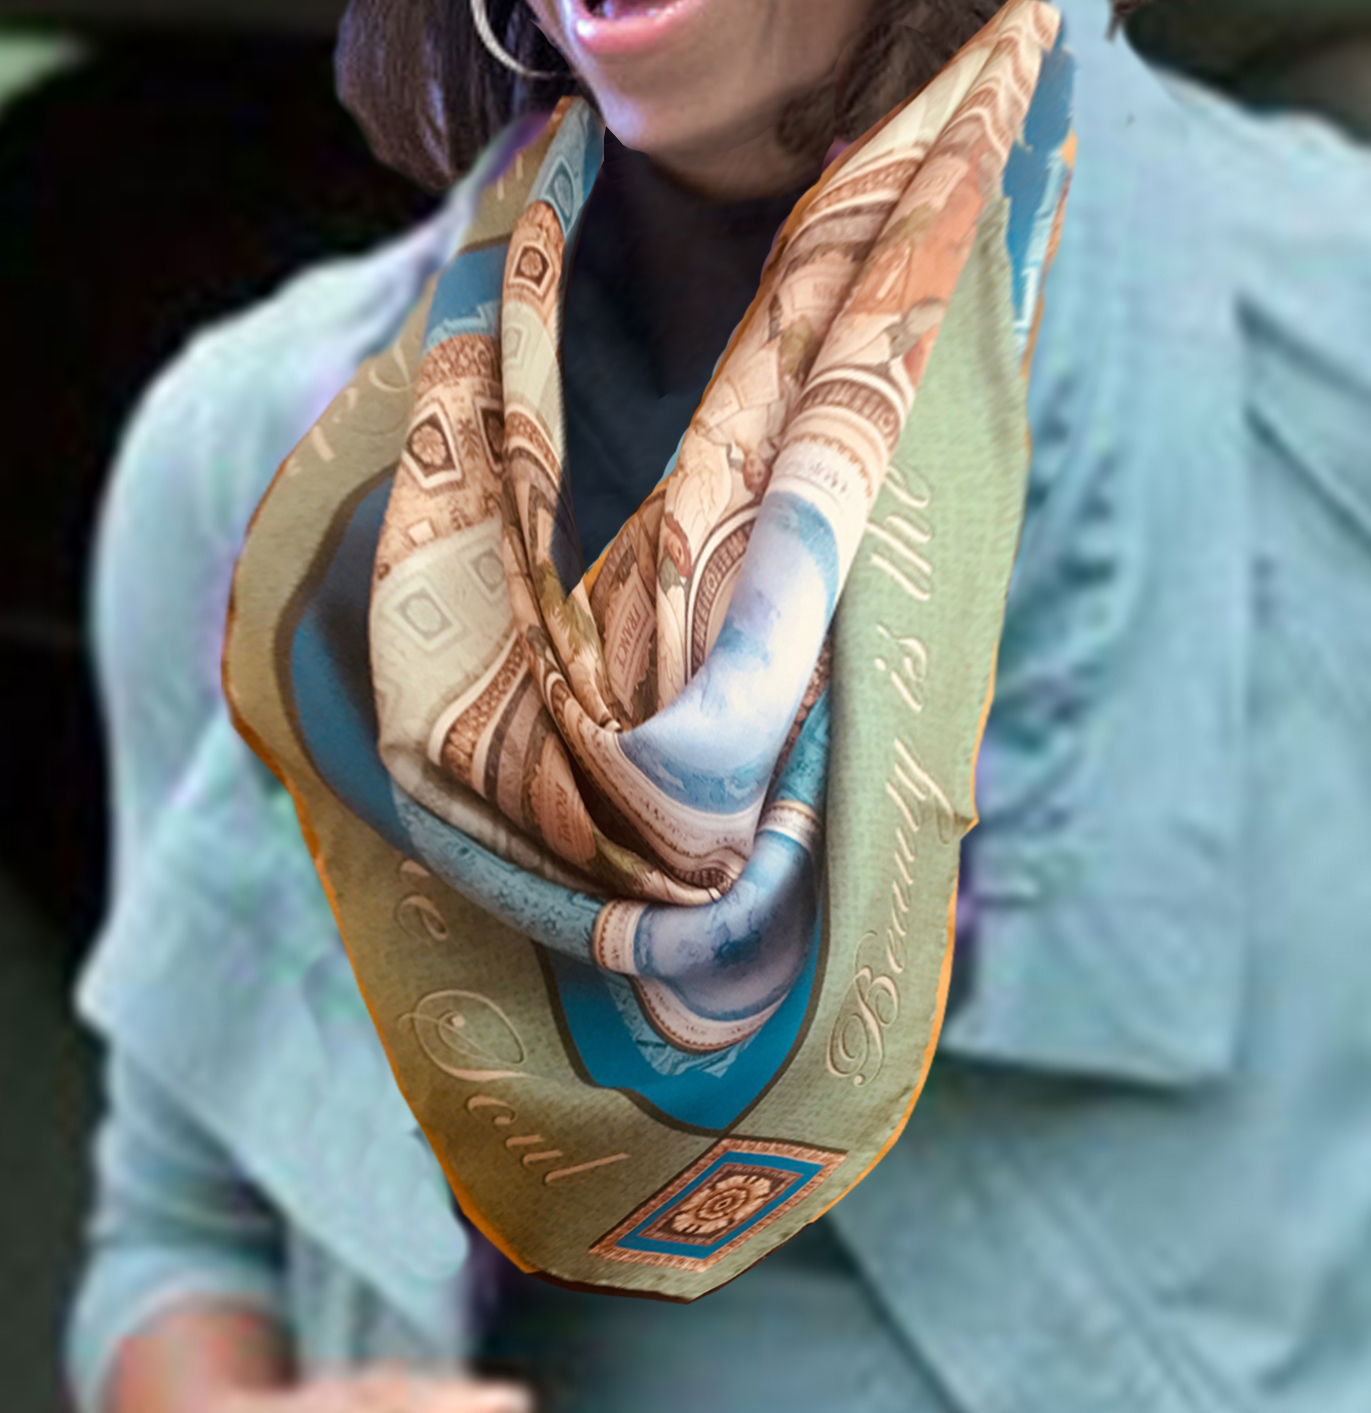 Michelle sm Library of Congress Scarf.jpg